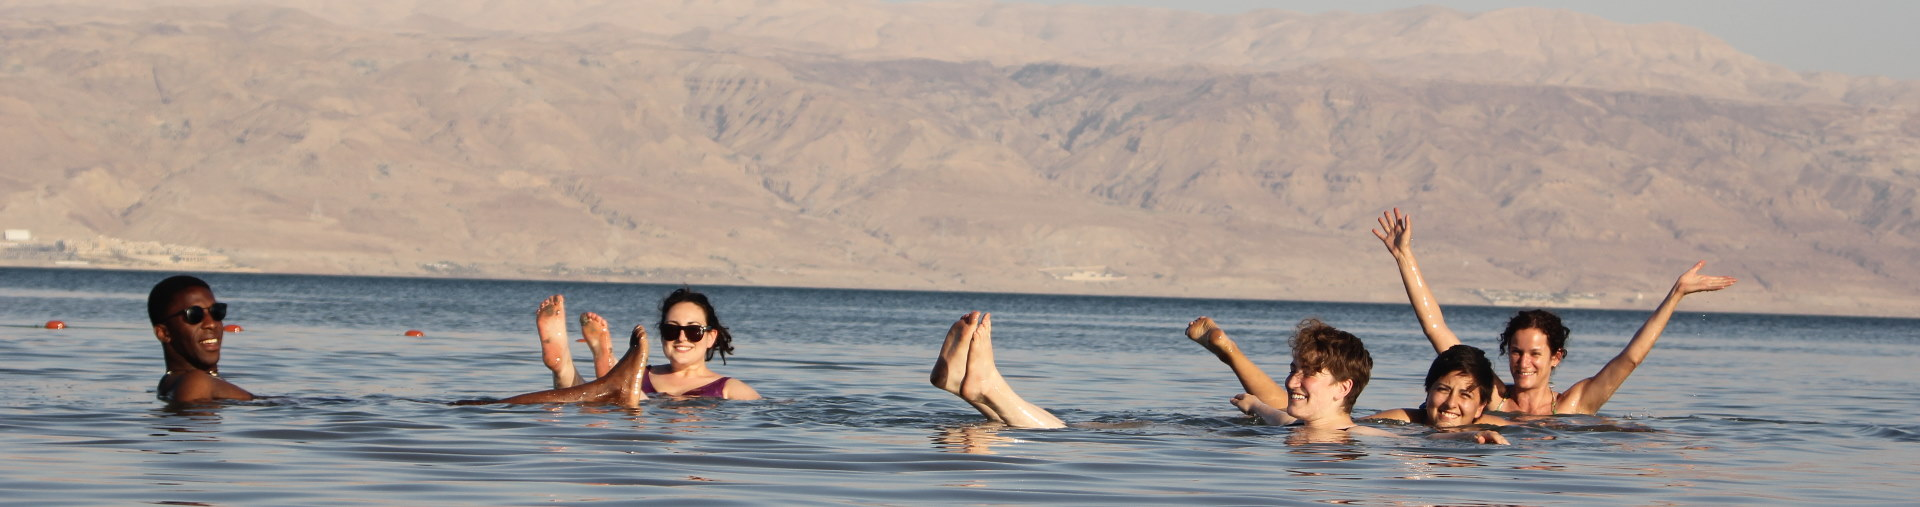 Float in the Dead Sea tour from jerusalem